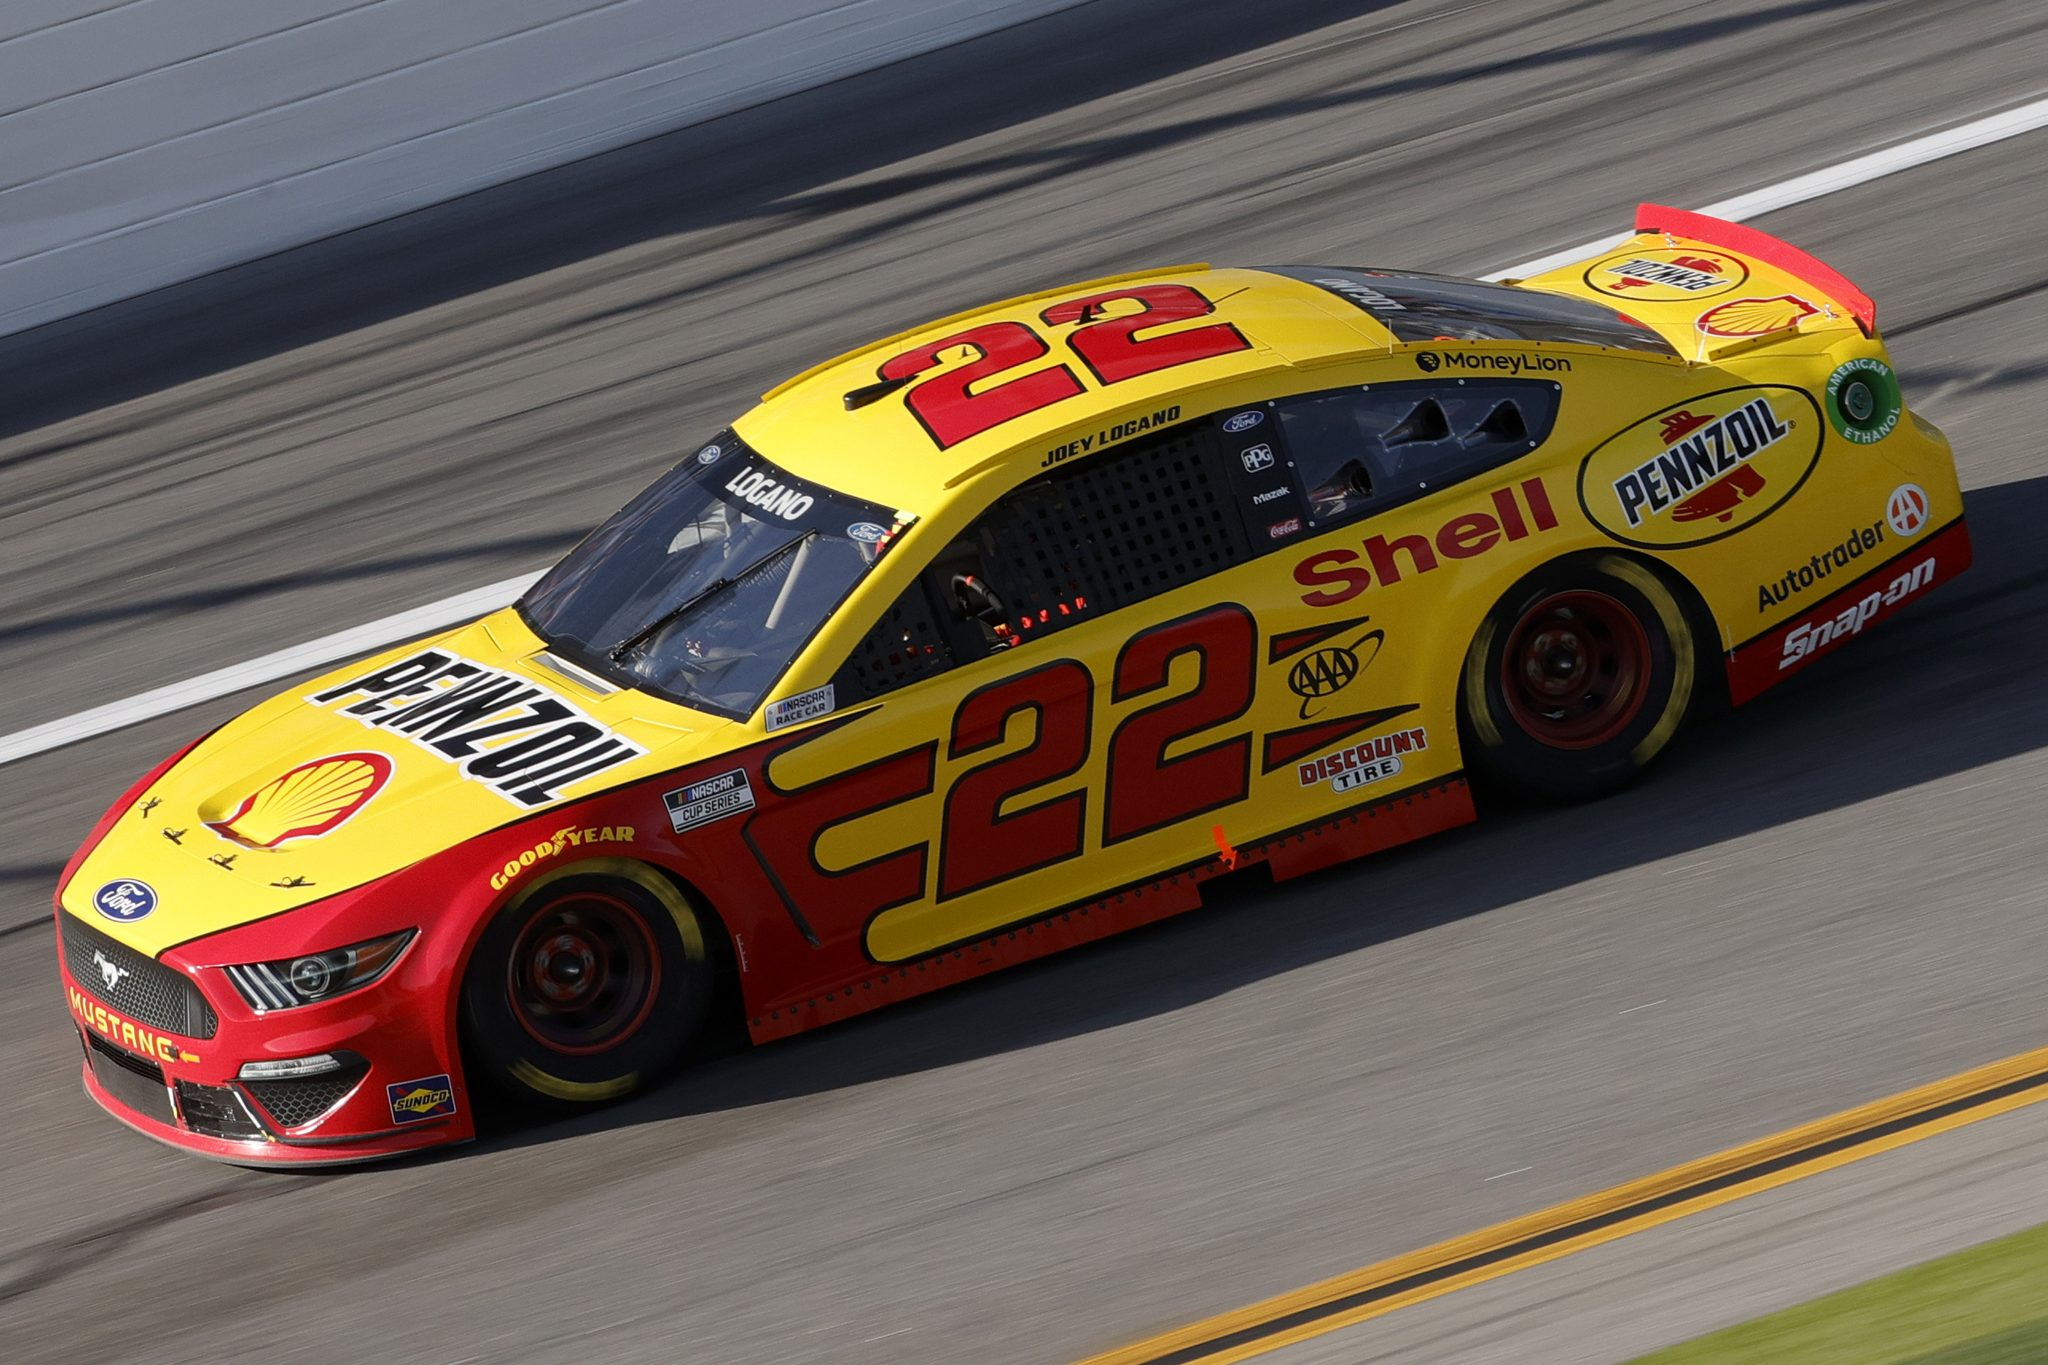 DAYTONA BEACH, FLORIDA - FEBRUARY 21: Joey Logano, driver of the #22 Shell Pennzoil Ford, drives during the NASCAR Cup Series O'Reilly Auto Parts 253 at Daytona International Speedway on February 21, 2021 in Daytona Beach, Florida. (Photo by Chris Graythen/Getty Images) | Getty Images